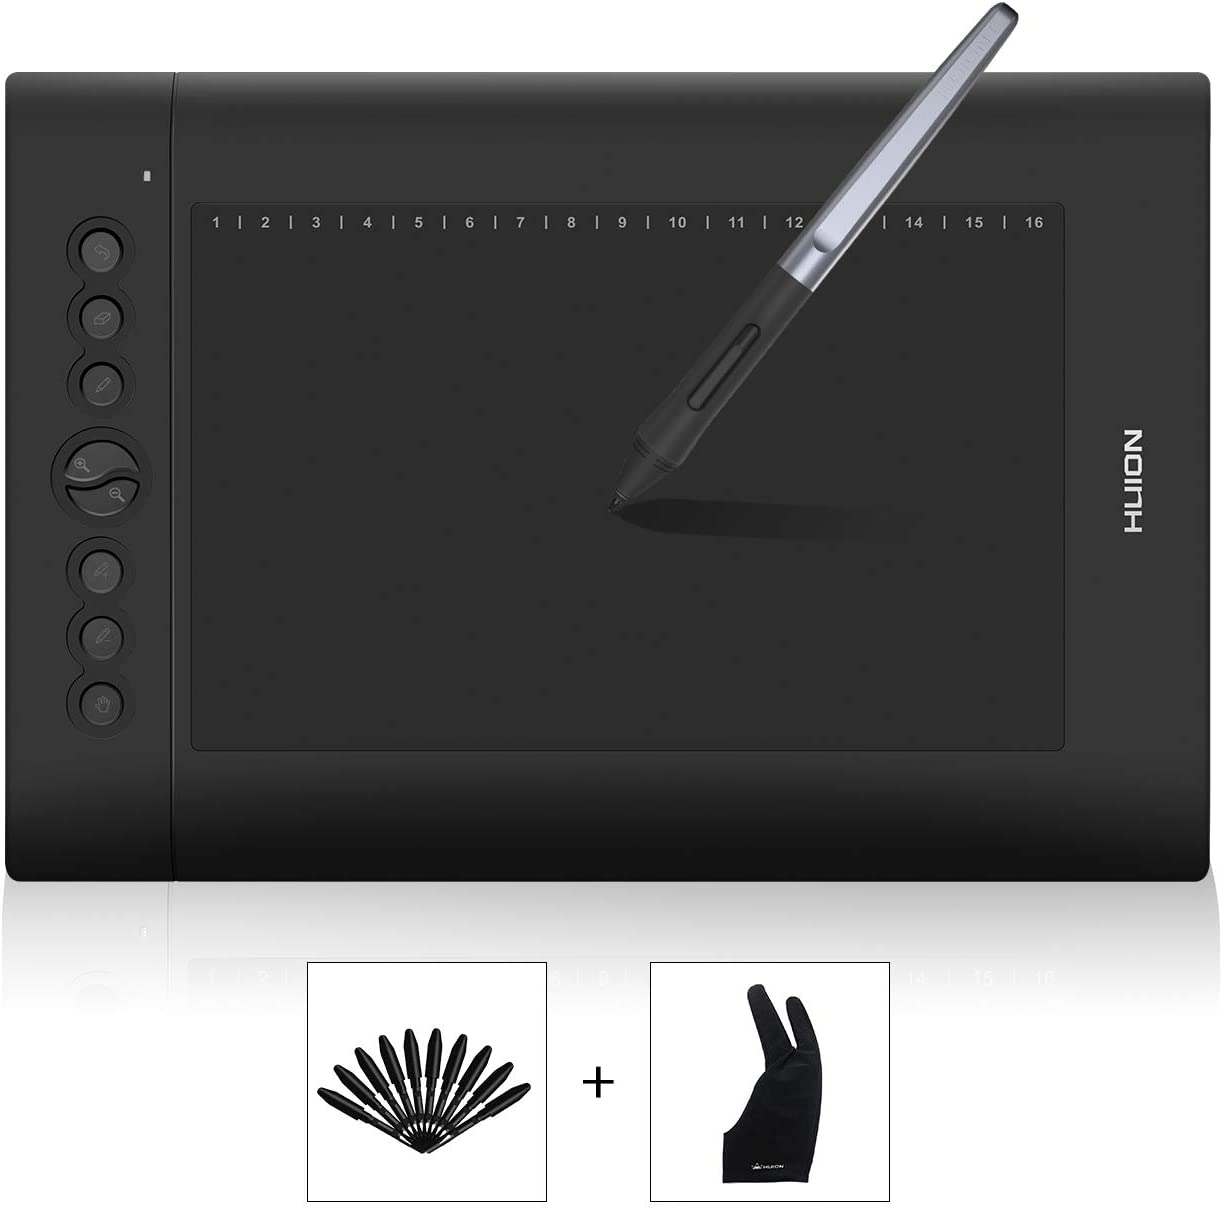 Amazon Com Huion H610pro V2 10 X 6 25 Inch Graphics Tablet Drawing Tablet With 8192 Battery Free Stylus Tilt Function 8 Shortcut Keys Compatible With Mac Pc Or Android Mobile Computers Accessories